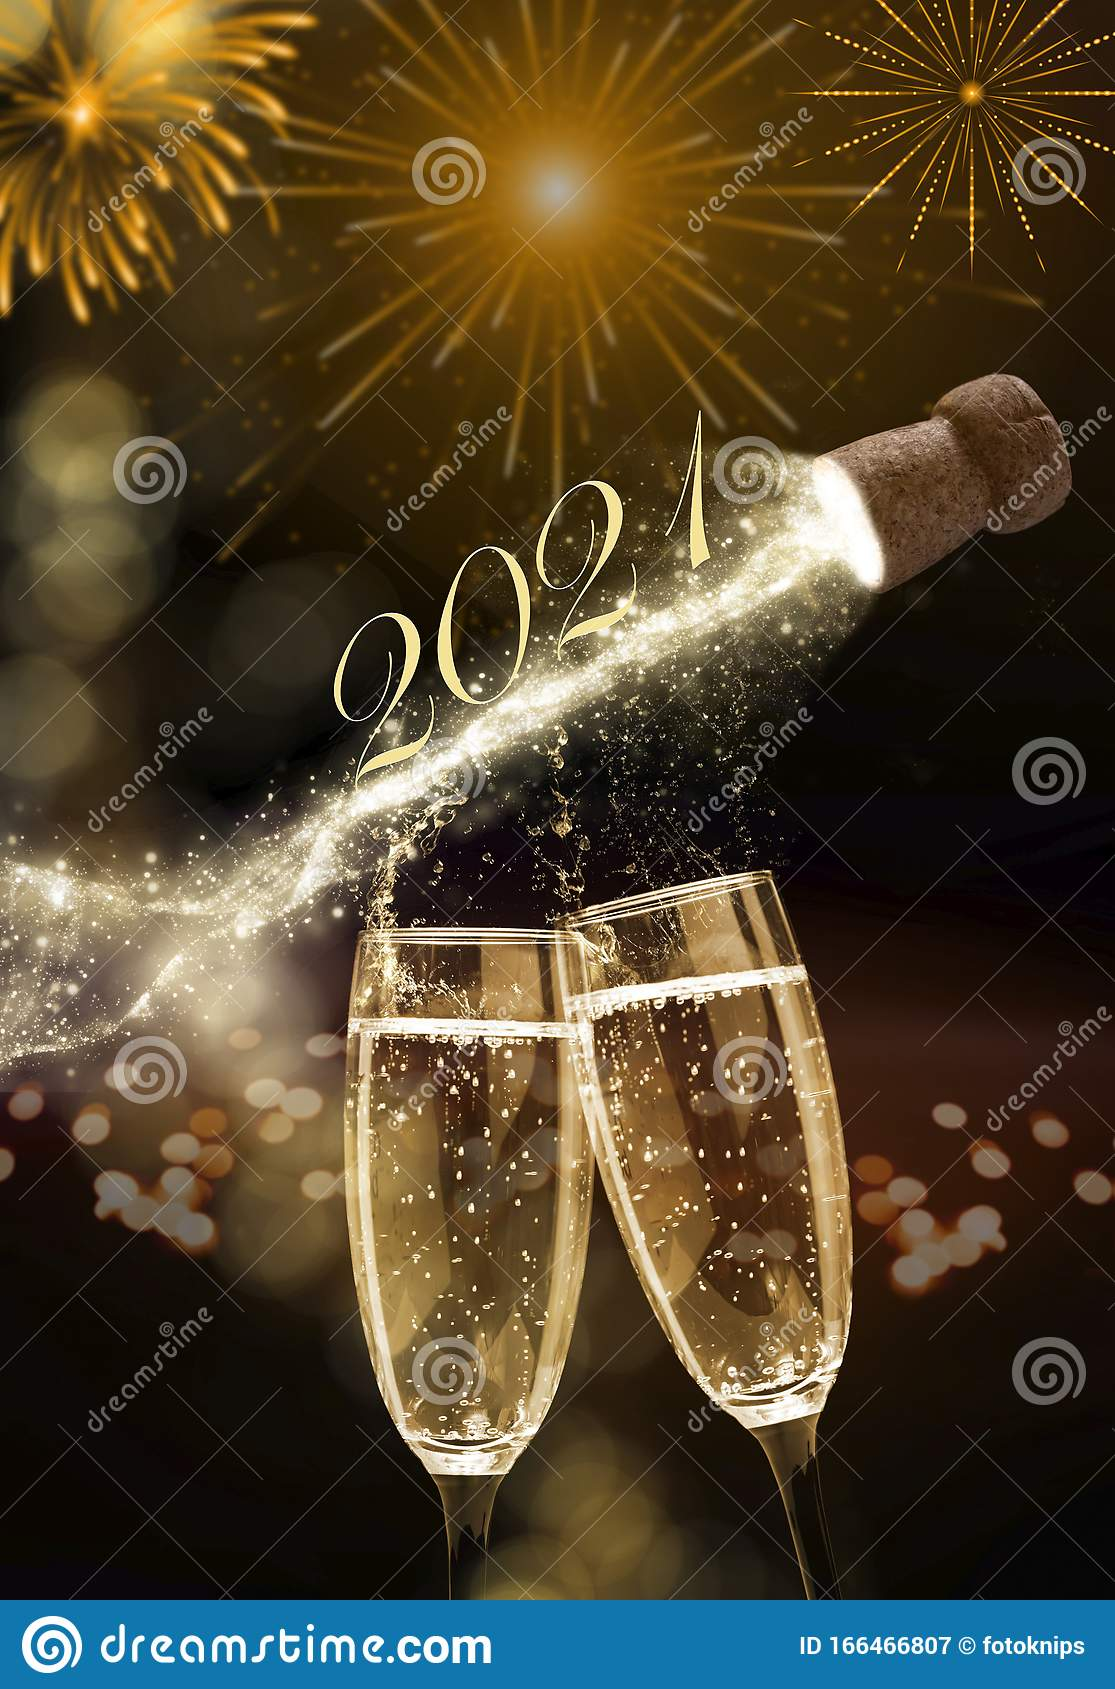 Sparkling Wine On New Year`s Eve, New Year 2021 Stock Image - Image of beverage, party: 166466807